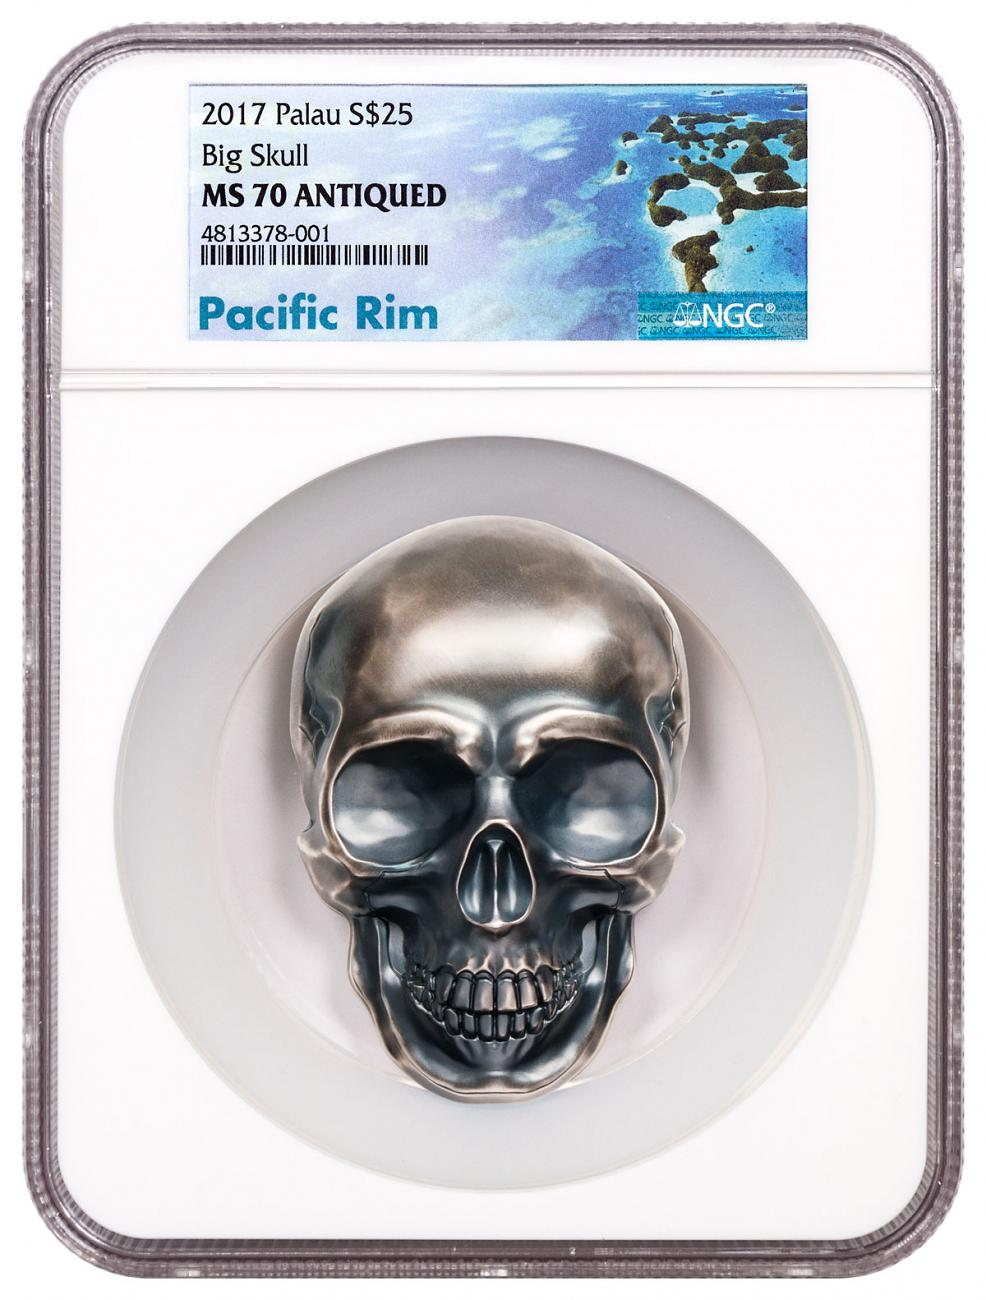 2017 Palau Skull - Big Skull High Relief Skull 1/2 Kilo Silver Antiqued $25 Coin NGC MS70 Exclusive Pacific Rim Label